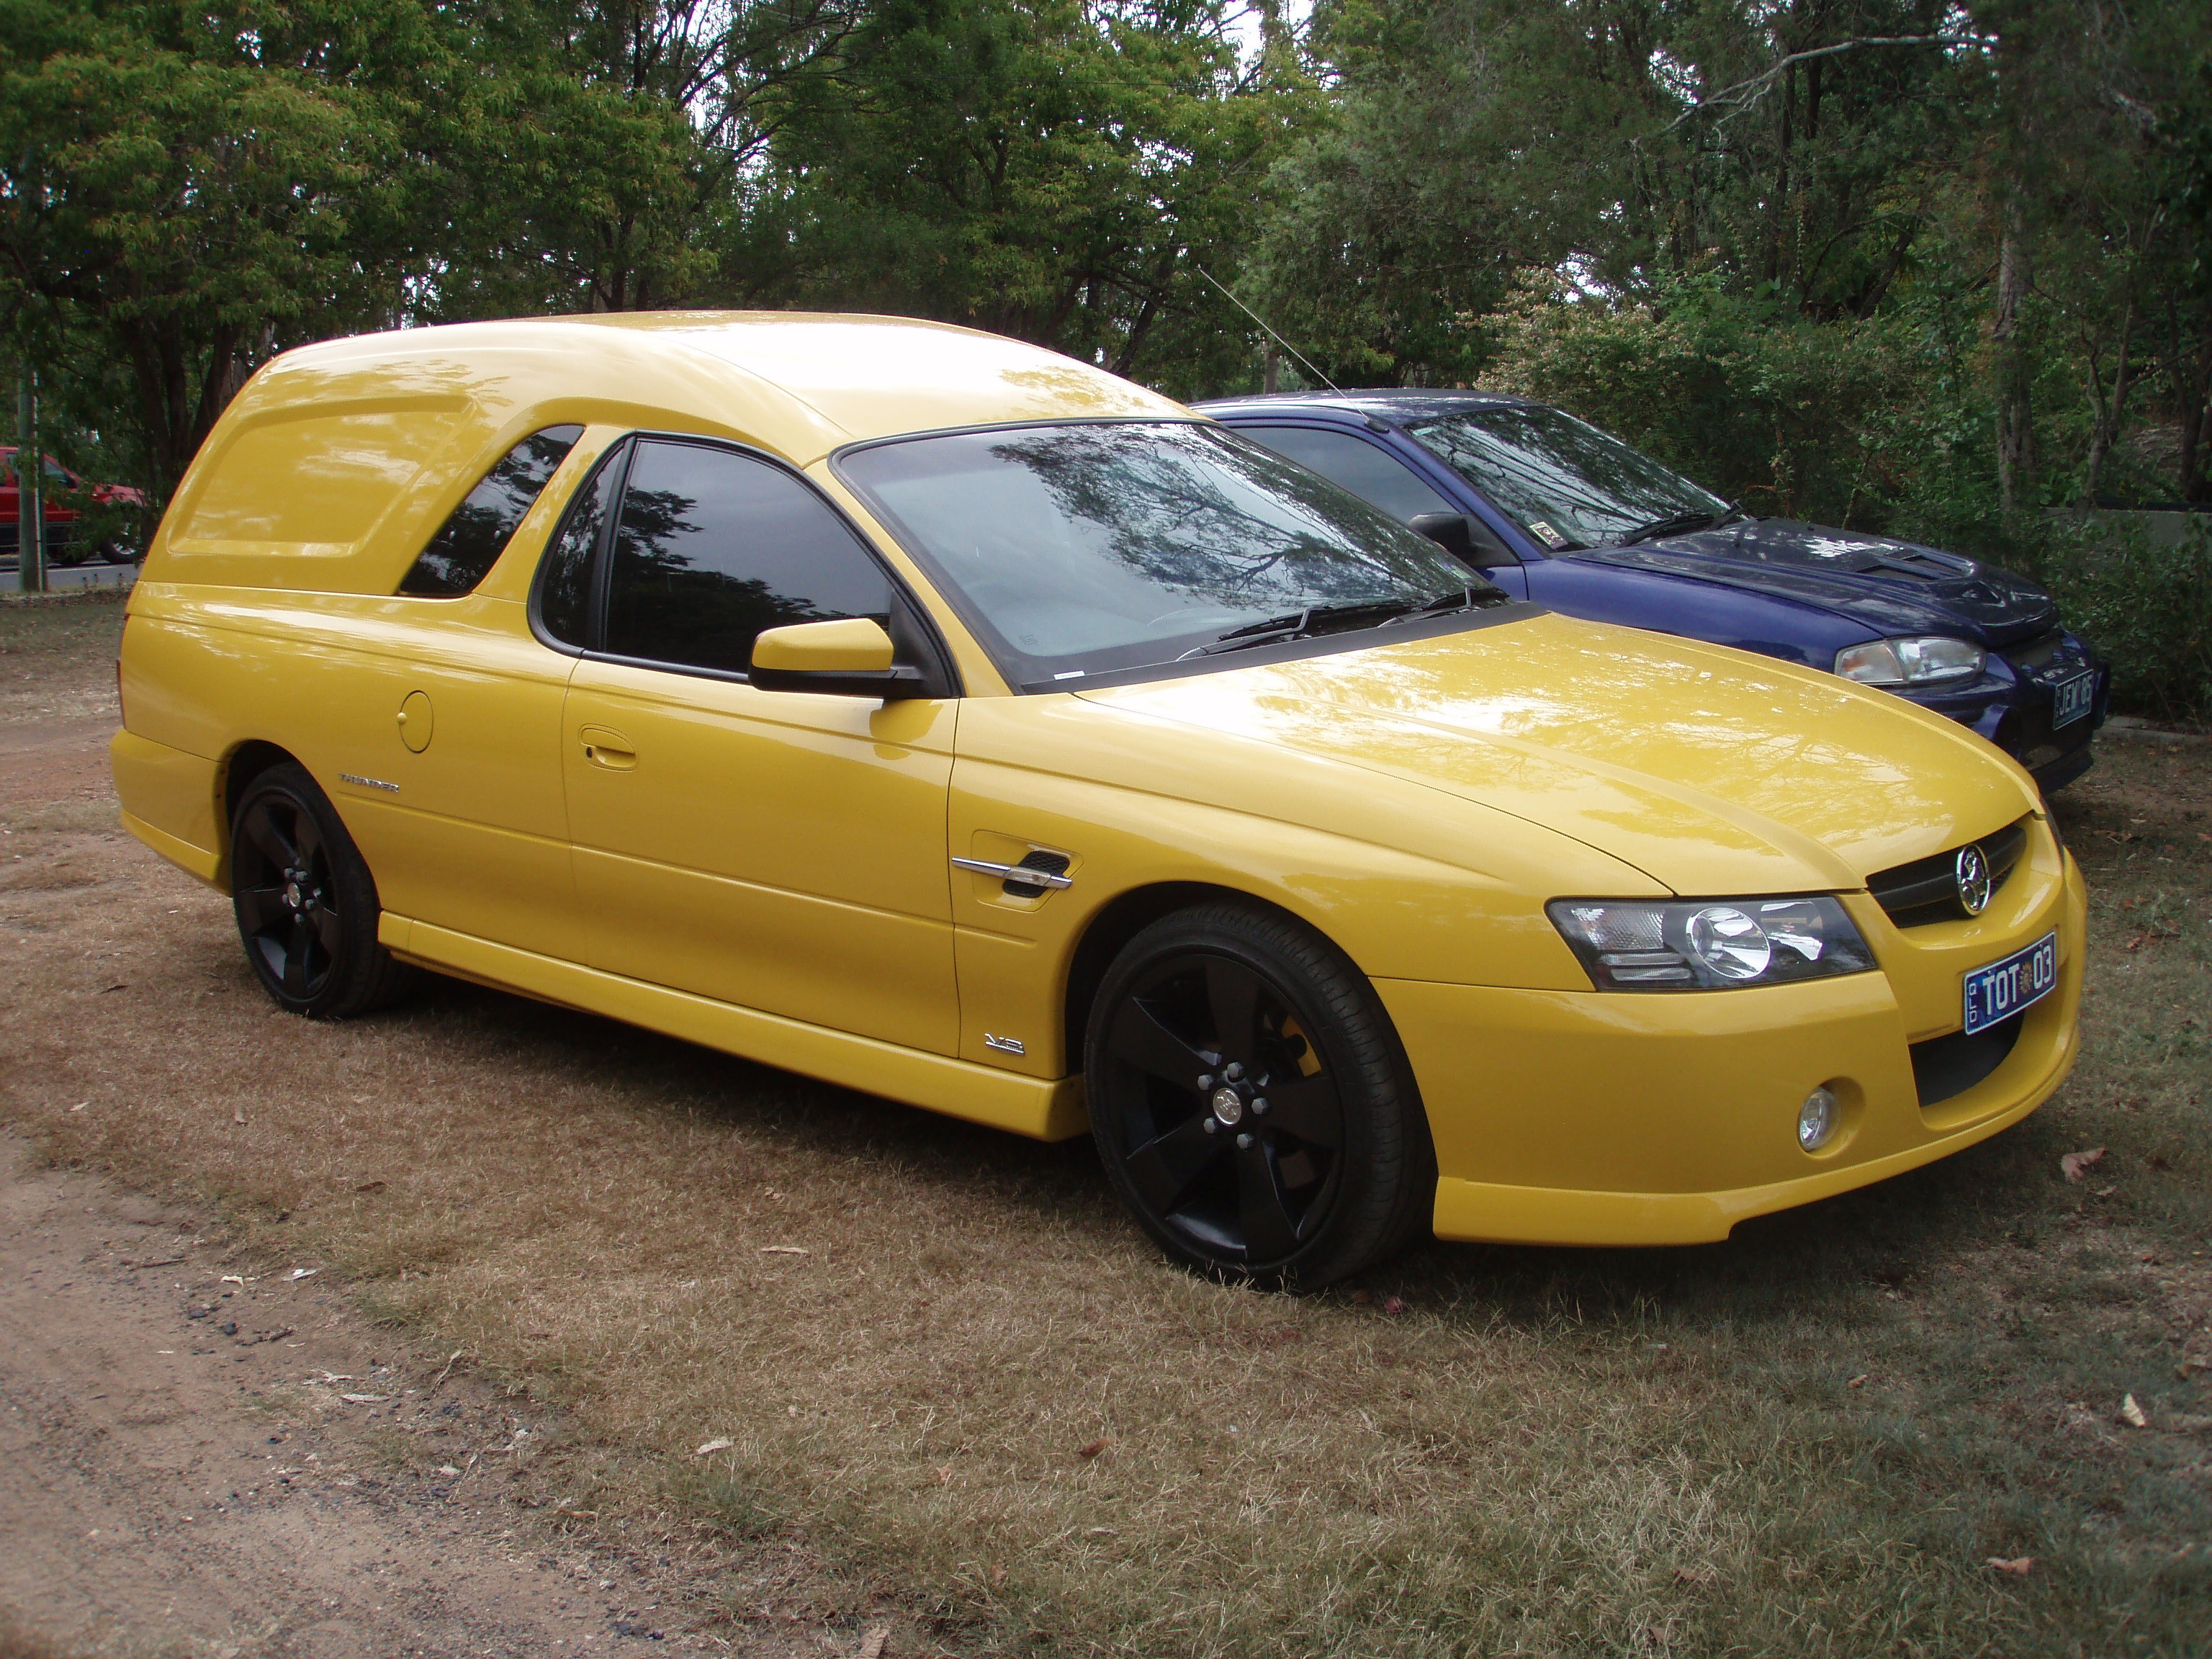 Simon_84 2006 Holden Sandman 32435770001_original ... & Simon_84 2006 Holden Sandman Specs Photos Modification Info at ...